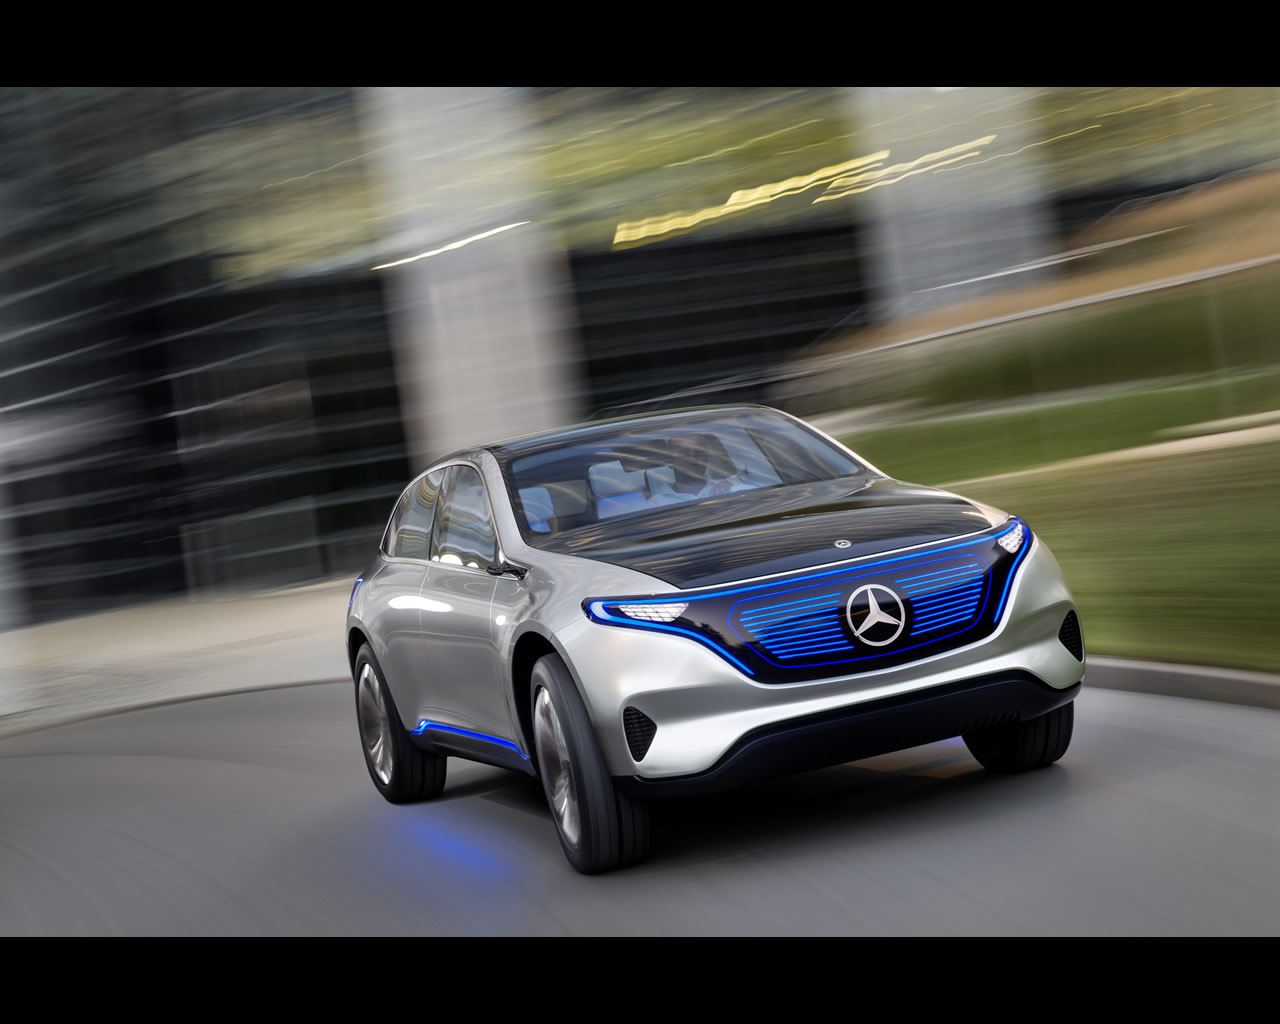 Mercedes benz eq pure electric suv coup concept 2016 for Mercedes benz concept electric car